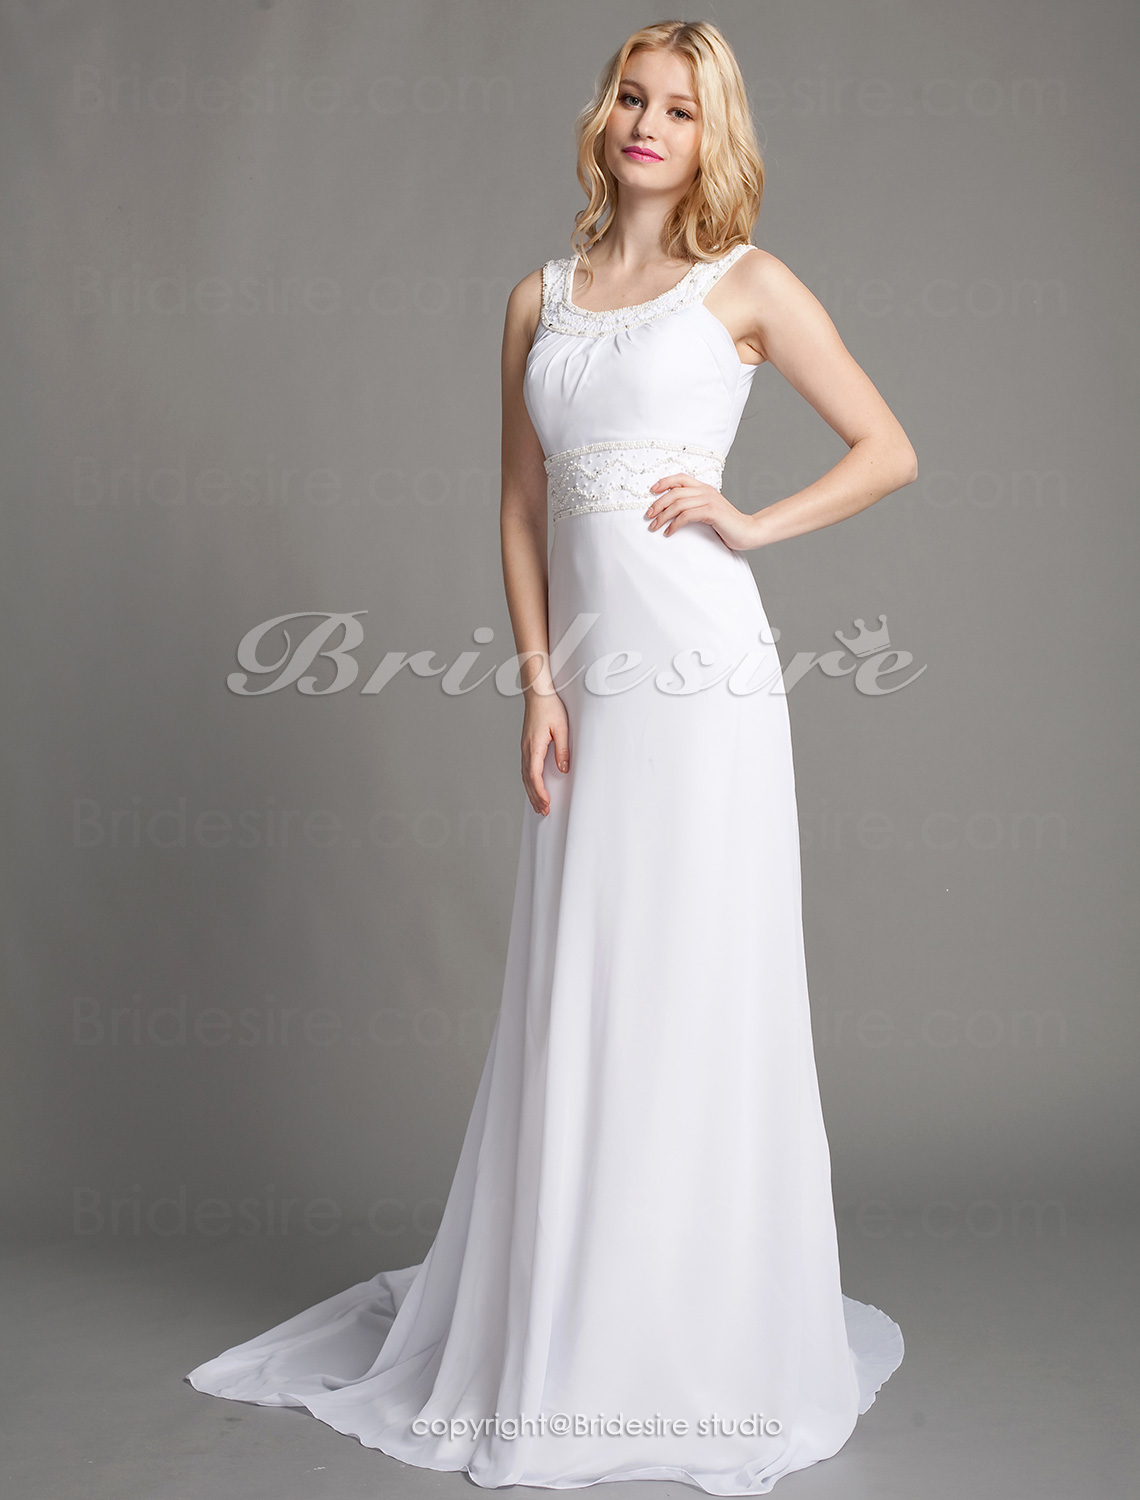 Sheath/Column Chiffon Court Train Scoop Wedding Dress